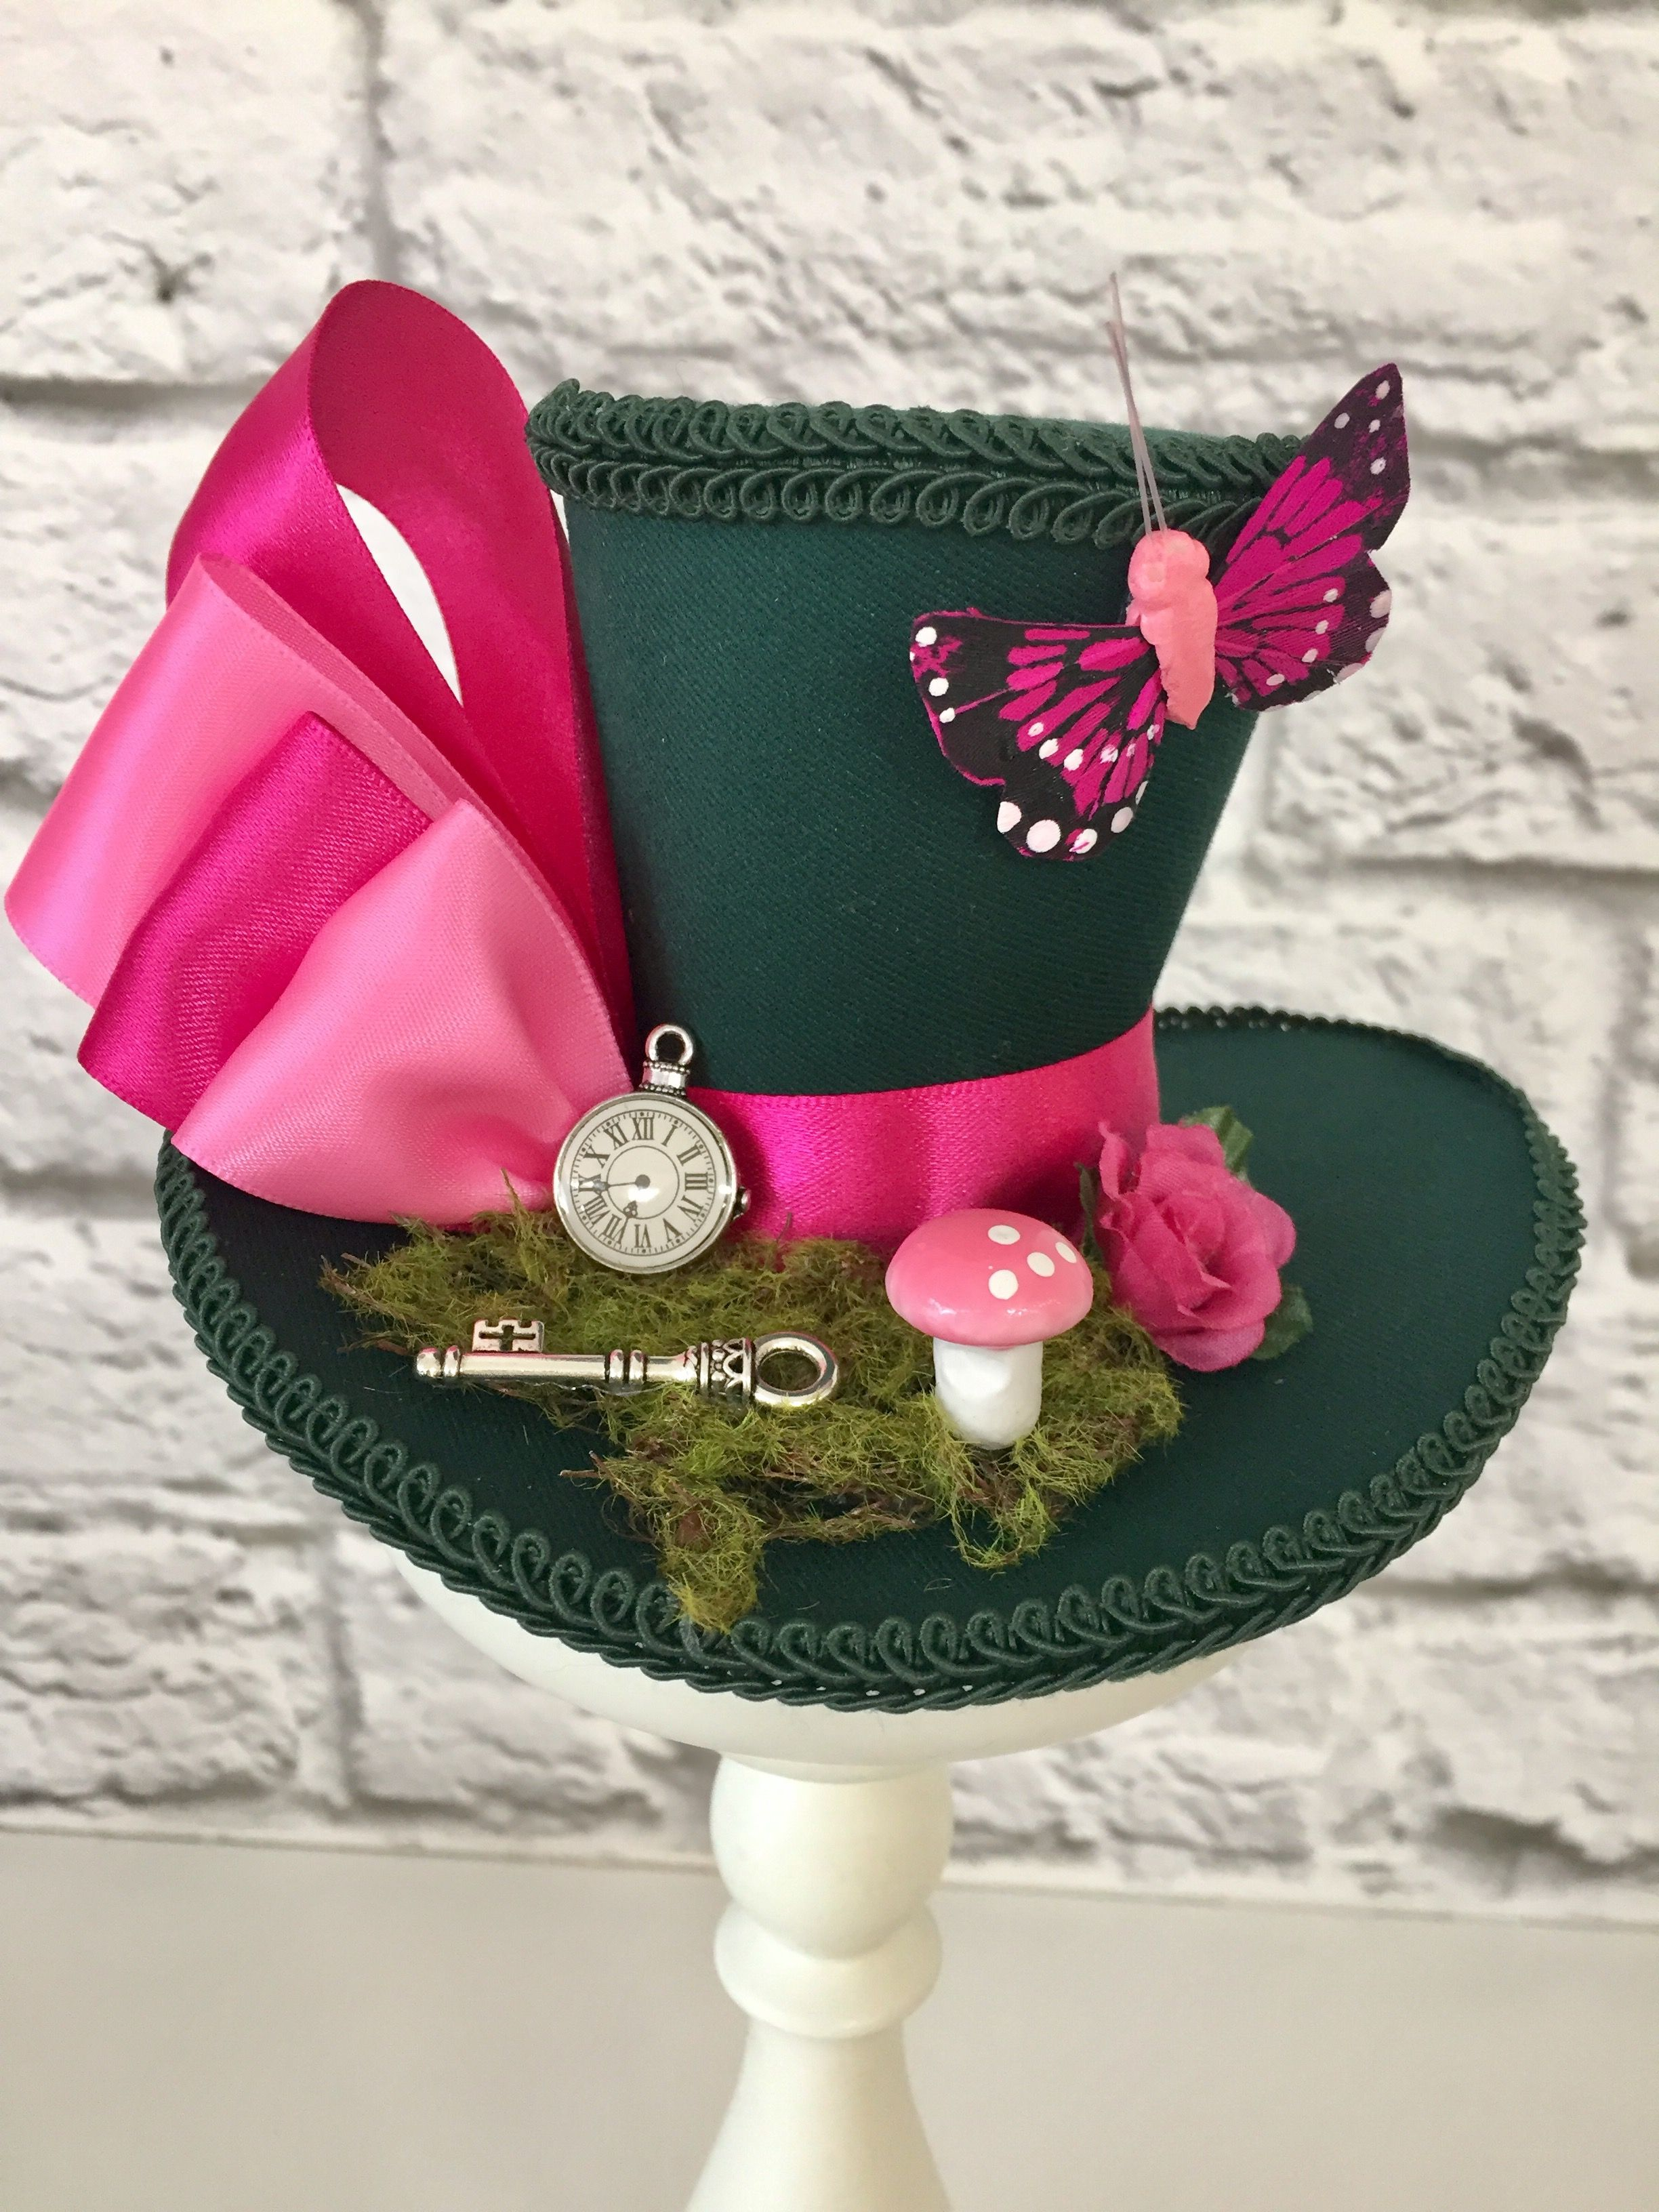 Alice In Wonderland Mad Hatter Tea Party Top Hats Www Etsy Com Au Shop Curiousercuriouserco Diy Mad Hatter Hat Alice In Wonderland Hat Mad Hatter Hats